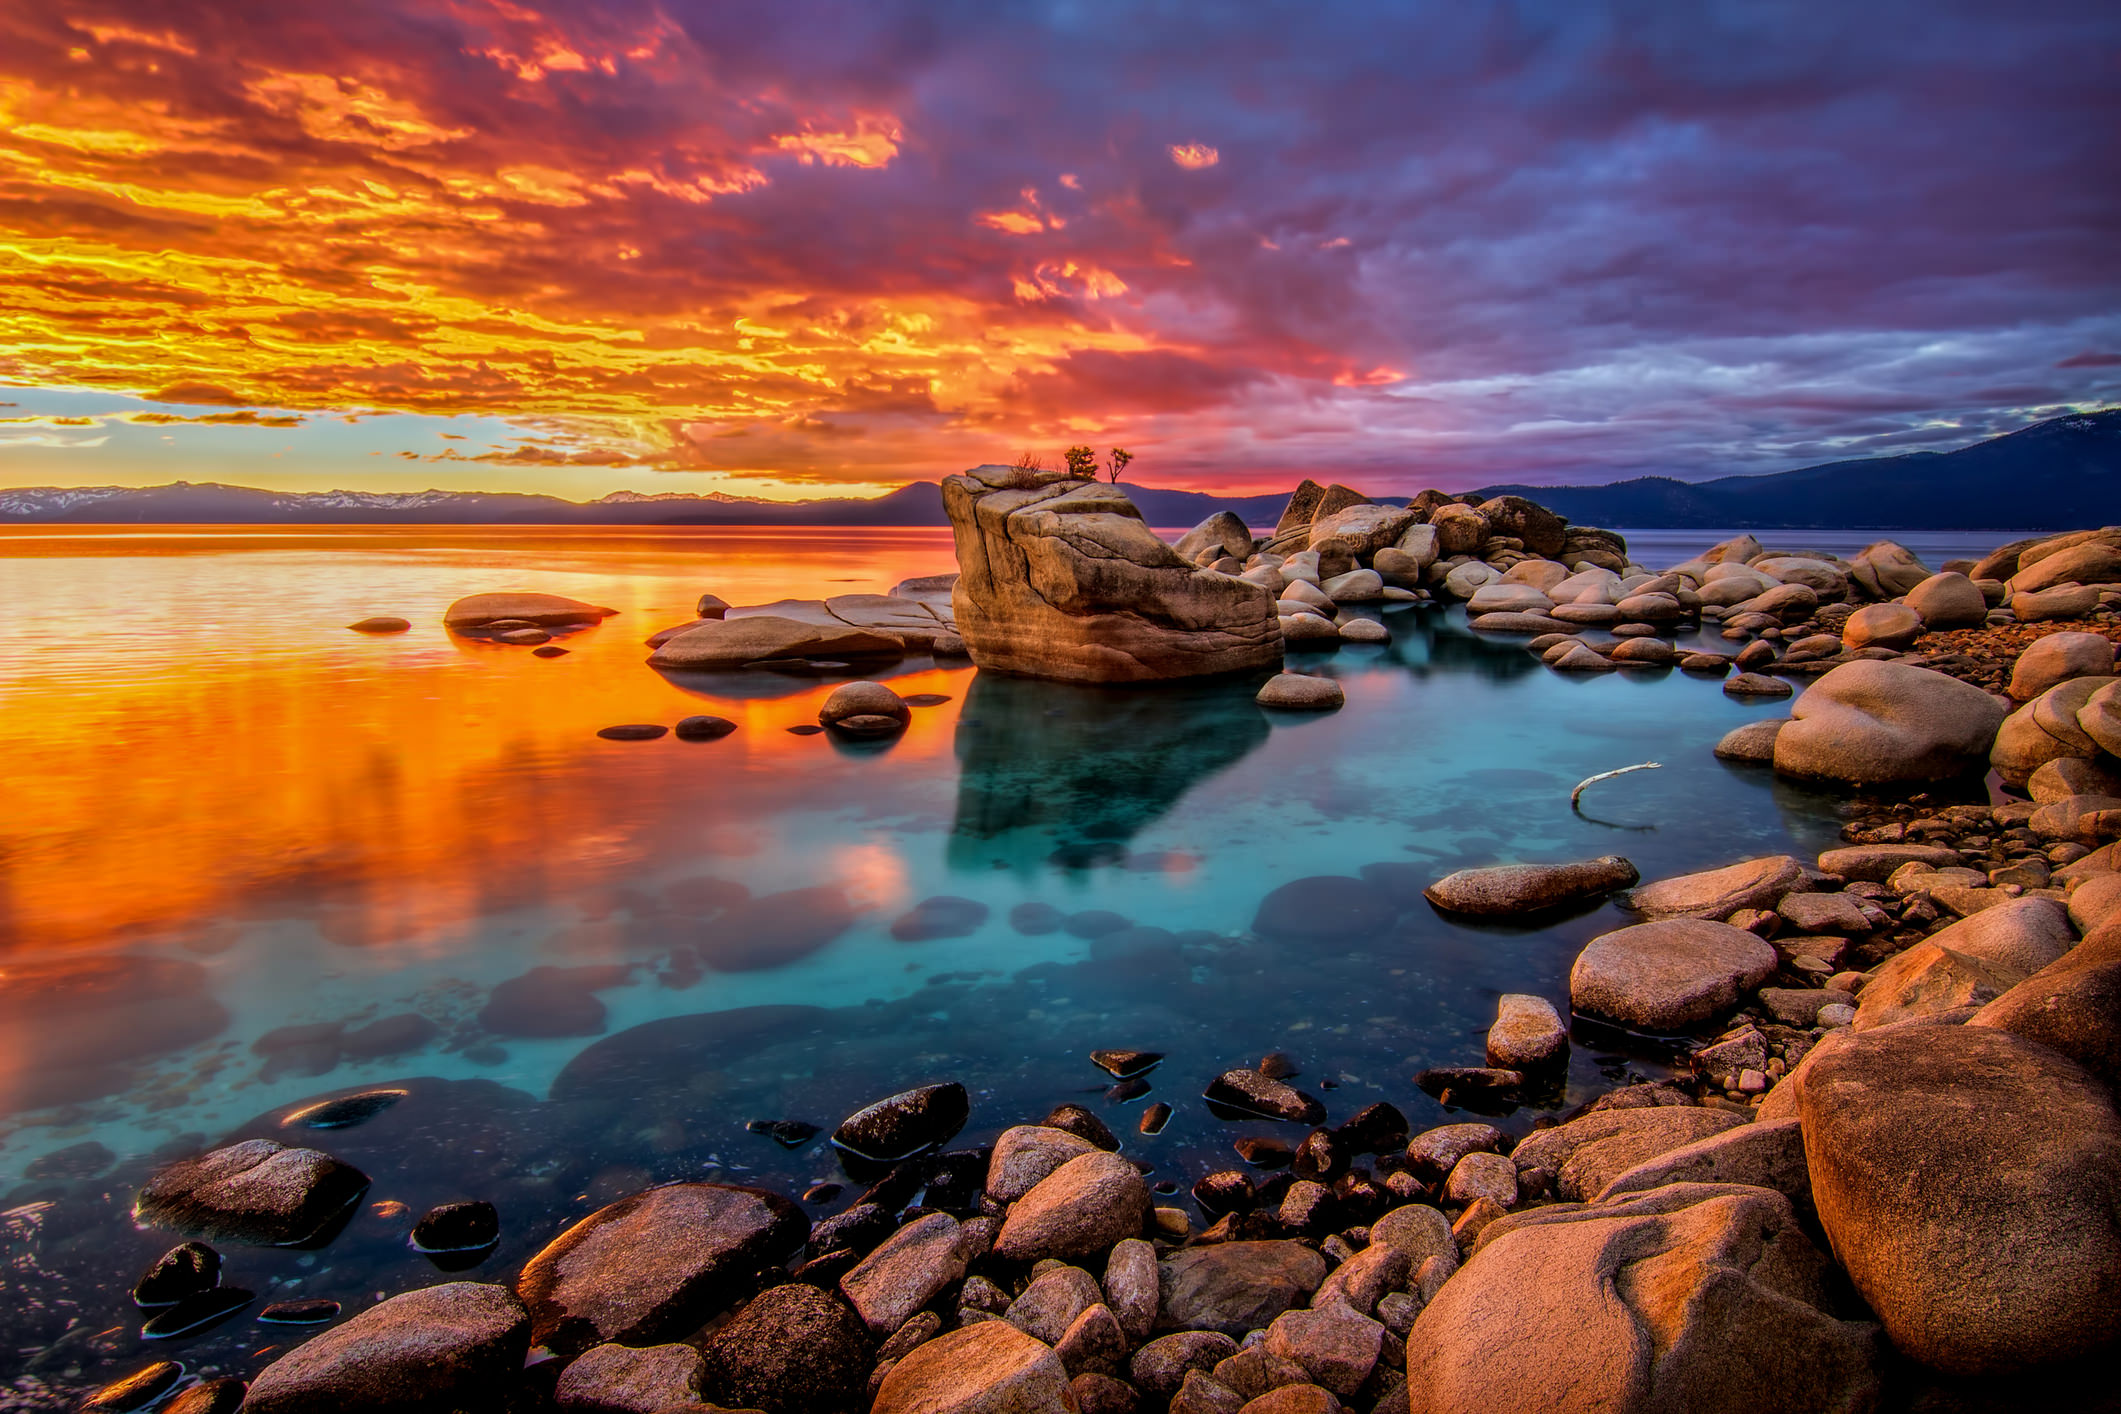 11 Reasons Why the Nikon D810 is the Best Landscape Photography Camera